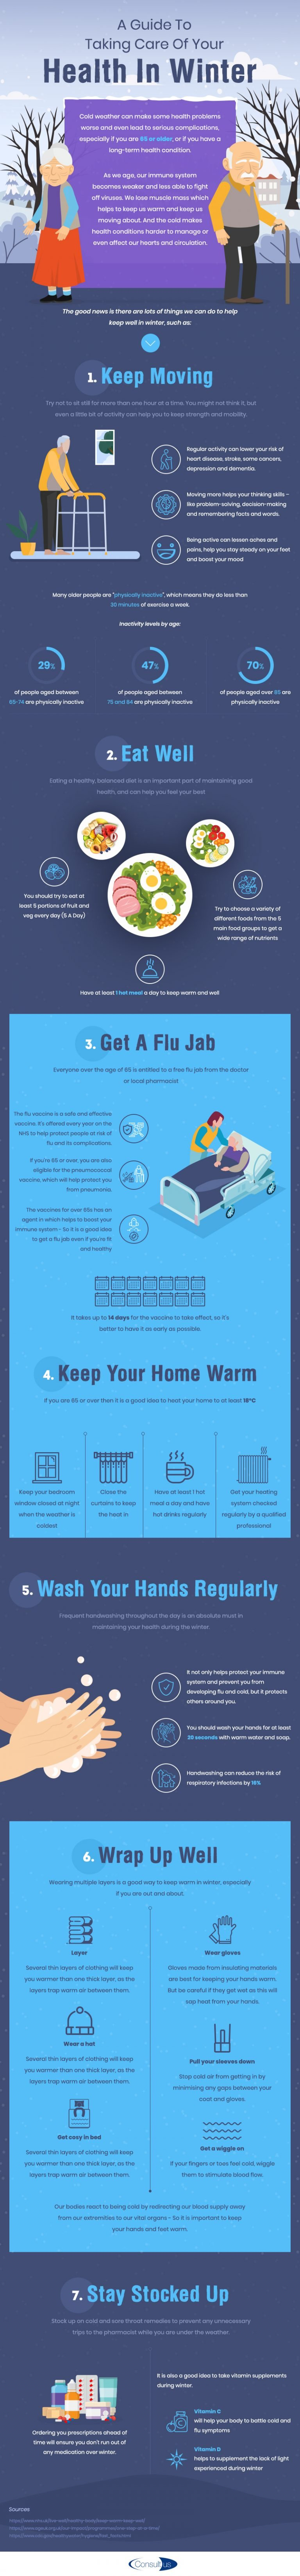 A GUIDE TO TAKING CARE OF YOUR HEALTH IN WINTER